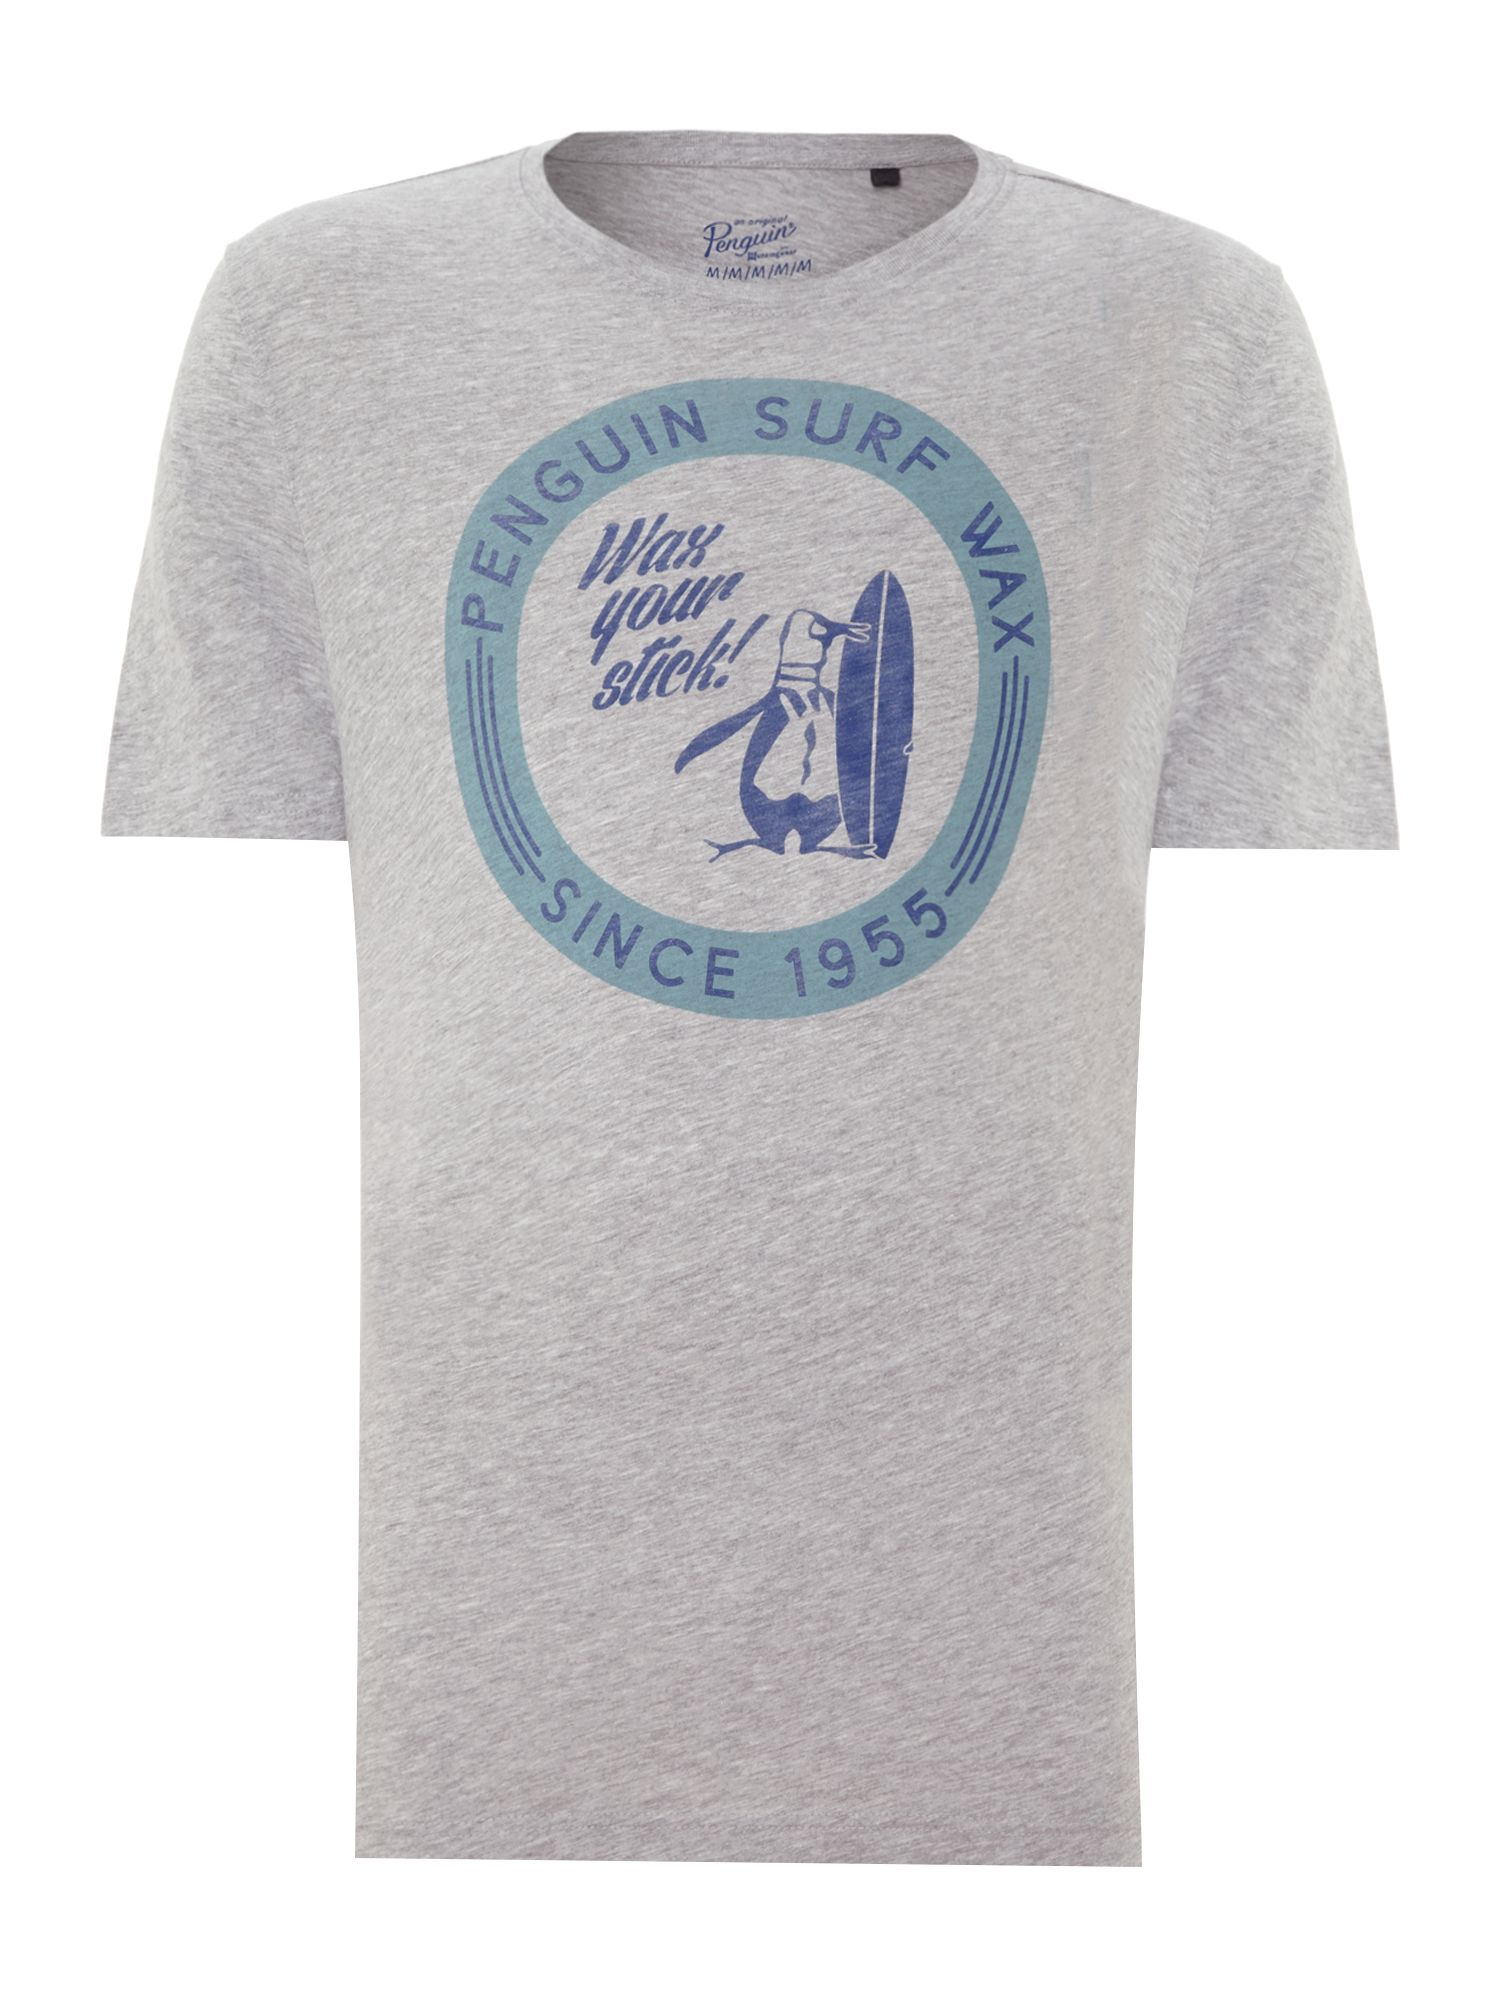 Surf board t shirt